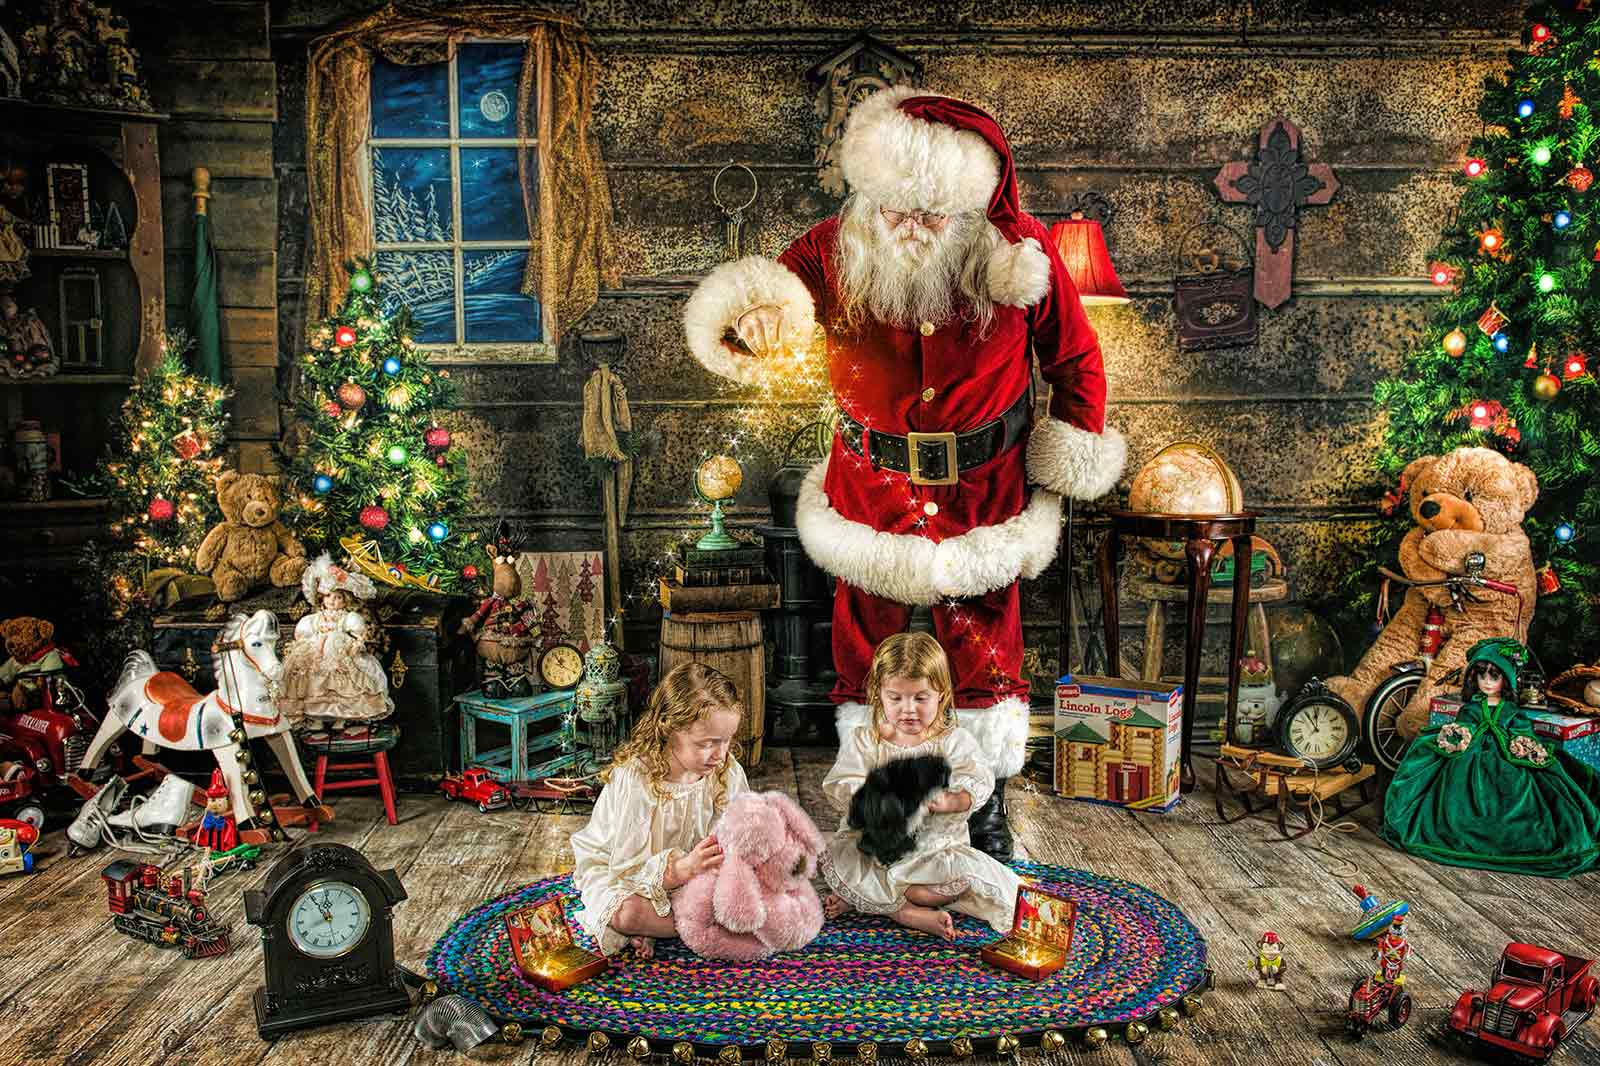 011_Magic-of-Santa-Anna-Thielen-Photography